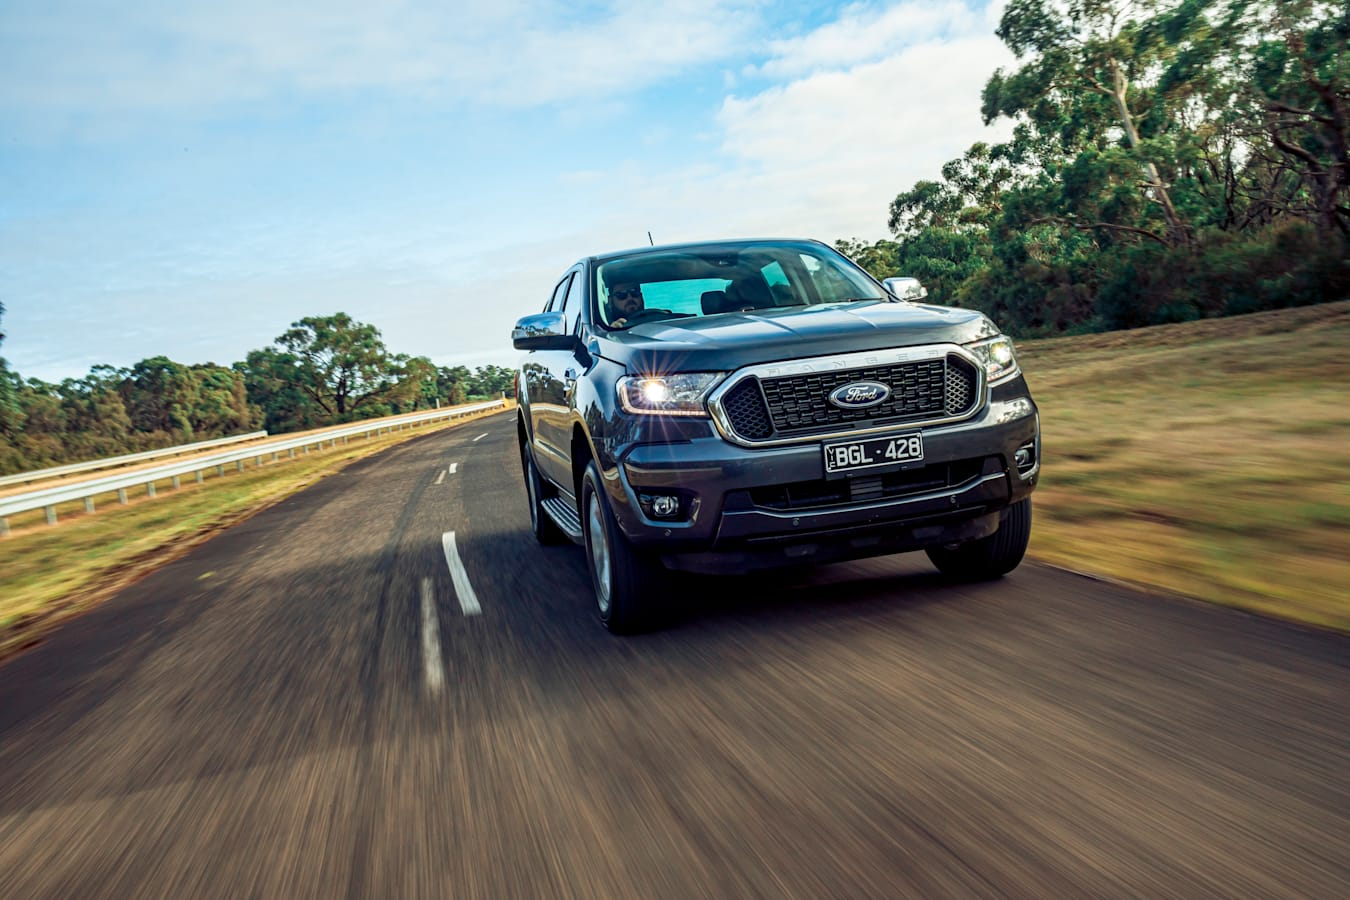 4 X 4 Australia Comparisons 2021 May 21 Ford Ranger XLT On Road Review